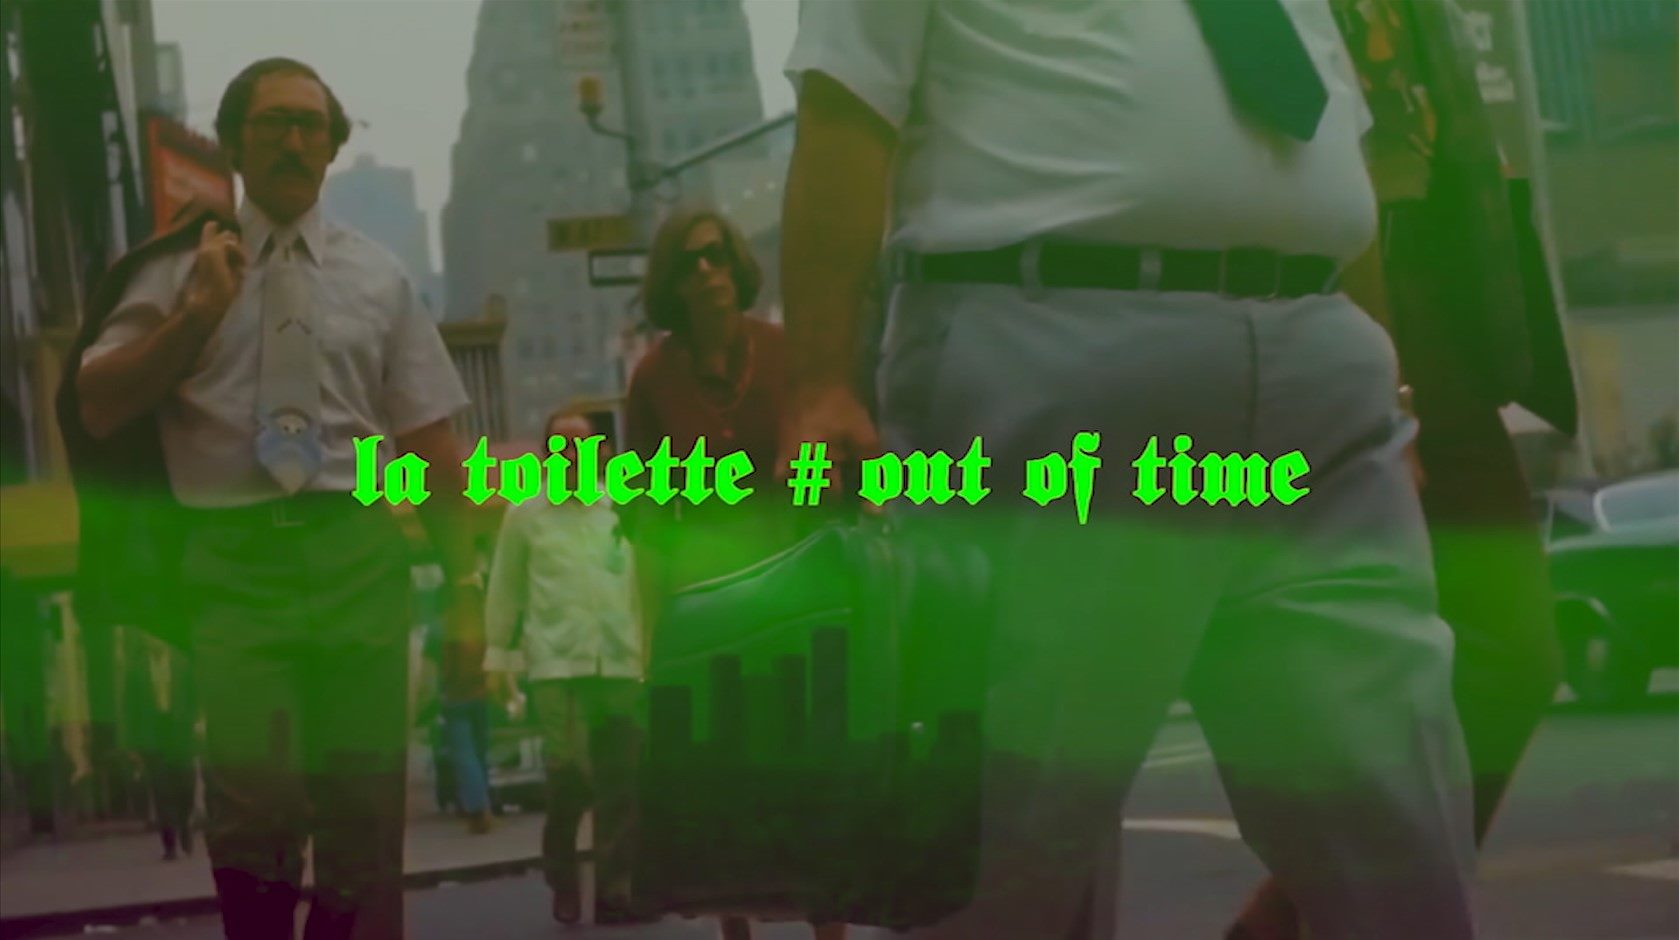 Holy Toilette # Out of time